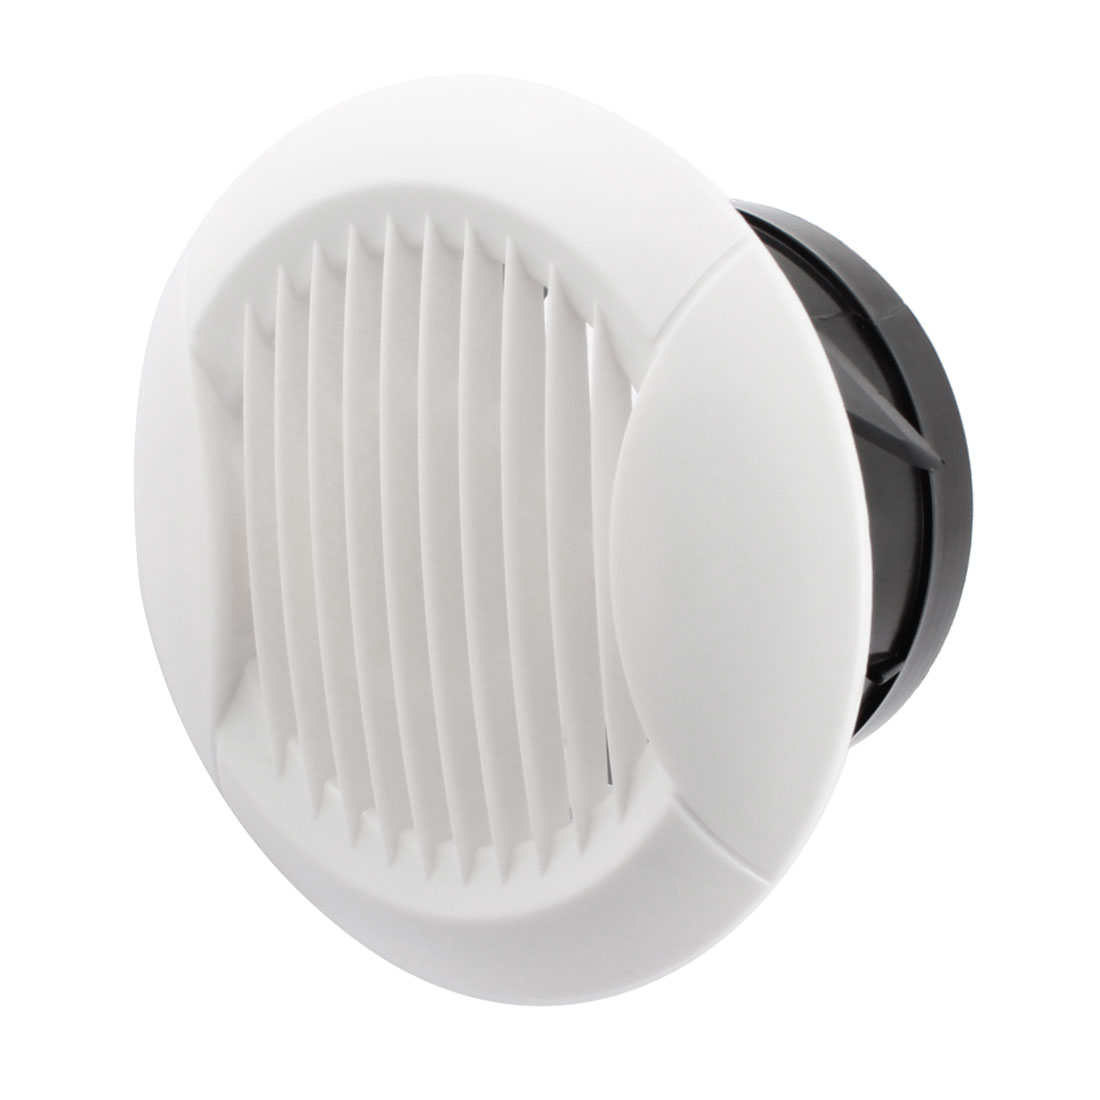 Circle Air Vent Outlet Louver Ventilation Grille Cover Flange White for 90mm Ducting